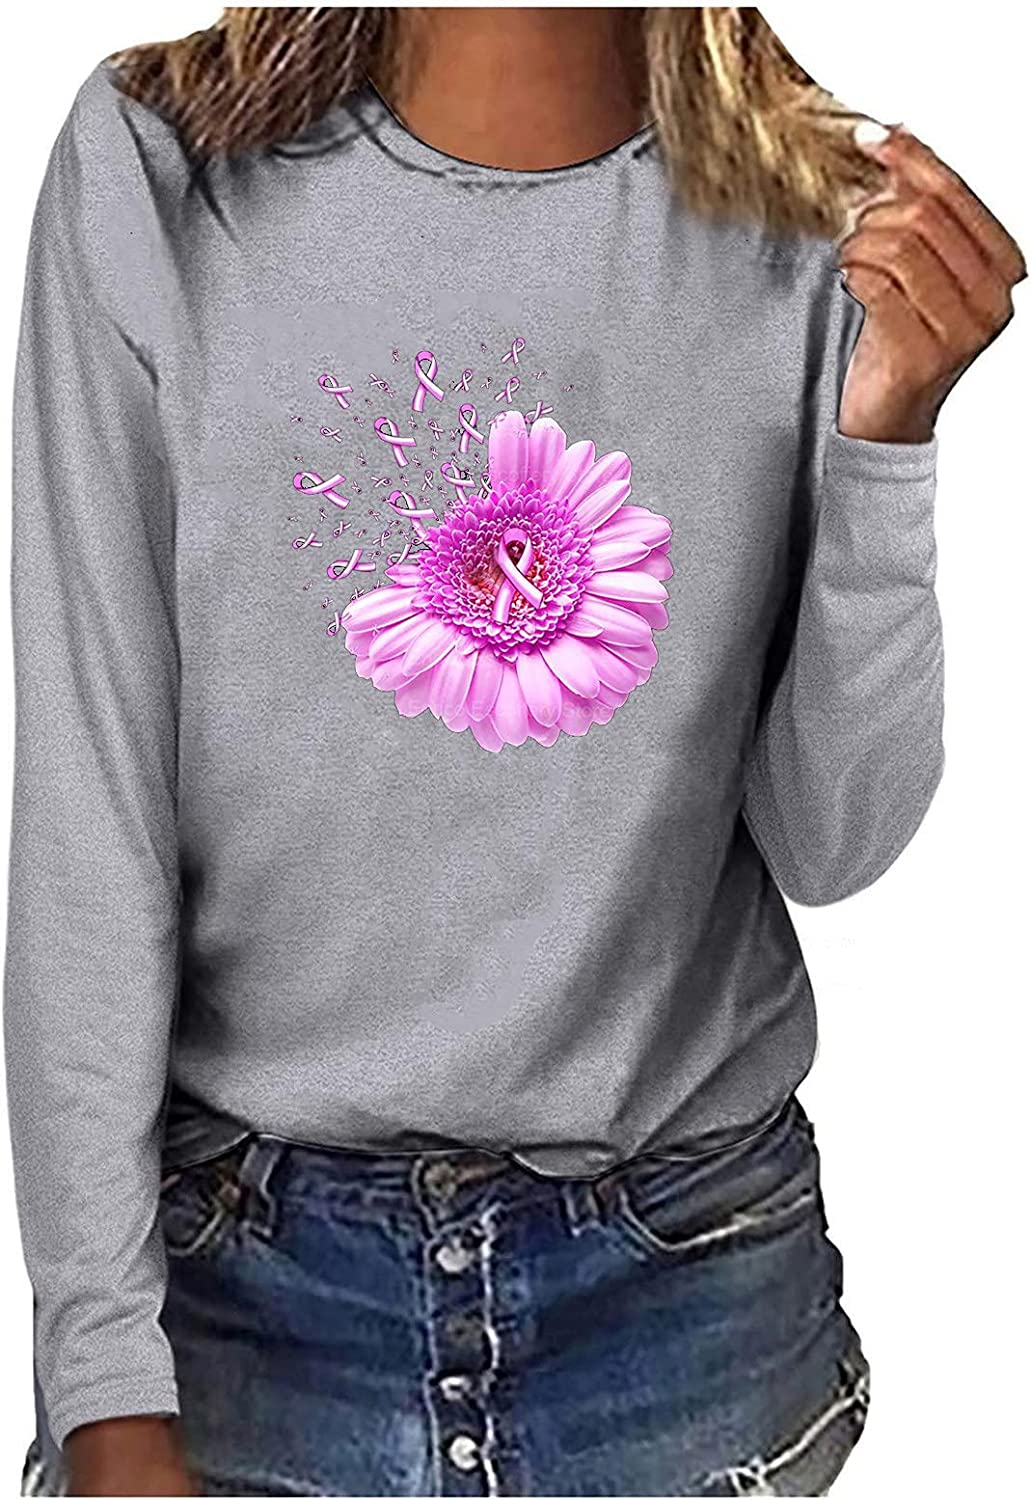 Breast Cancer Gifts for Women, Trendy Graphic Tee Long Sleeve Crewneck Tops Casual Loose Fit Shirt Workout Sweatshirt